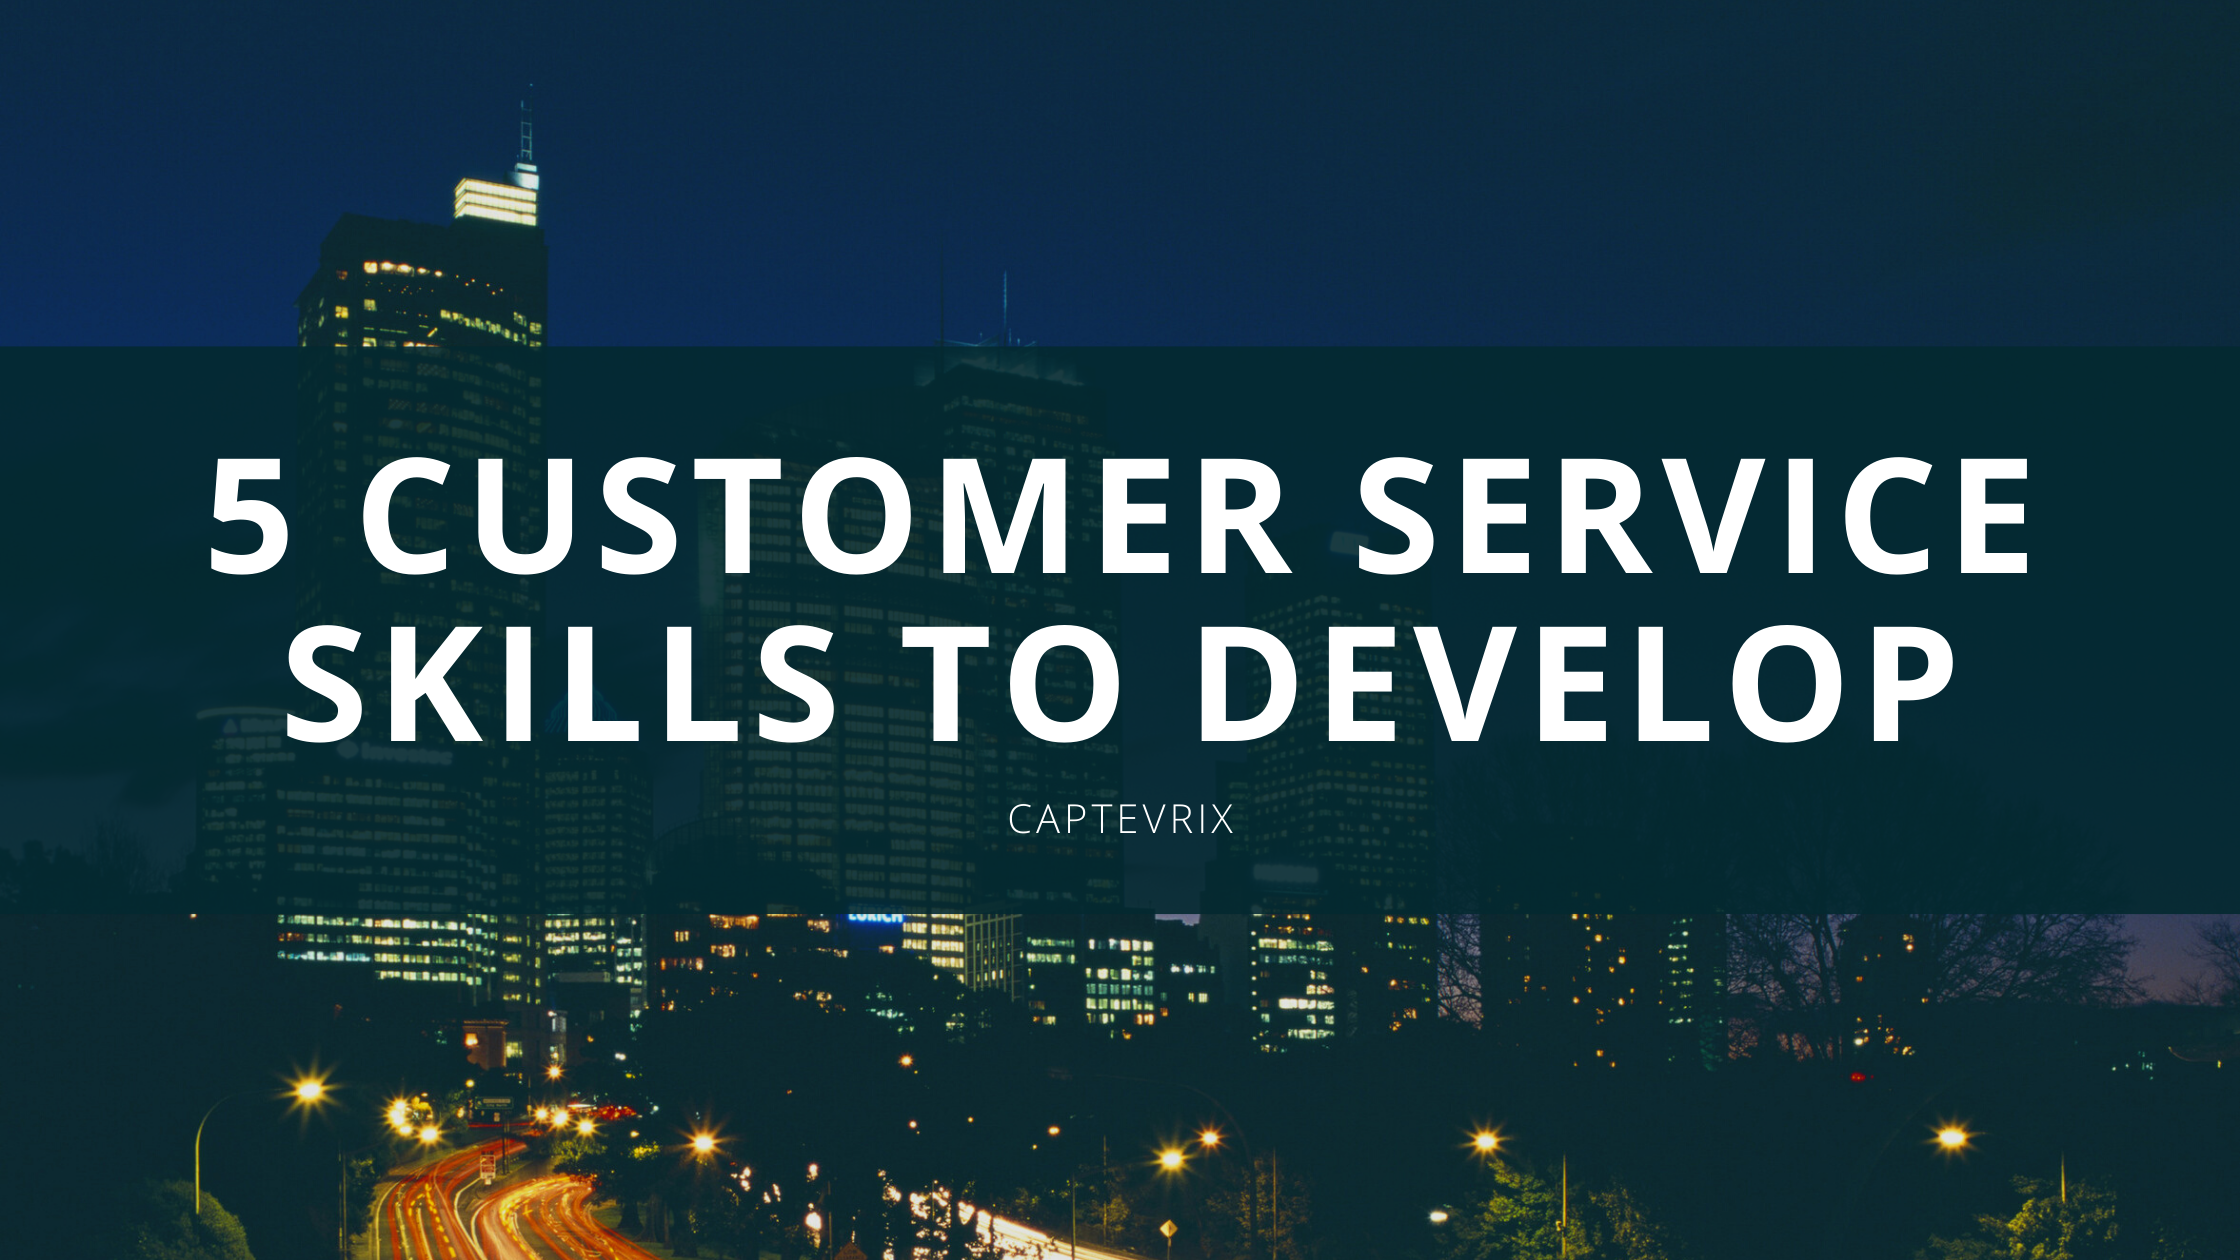 5 customer service skills to develop